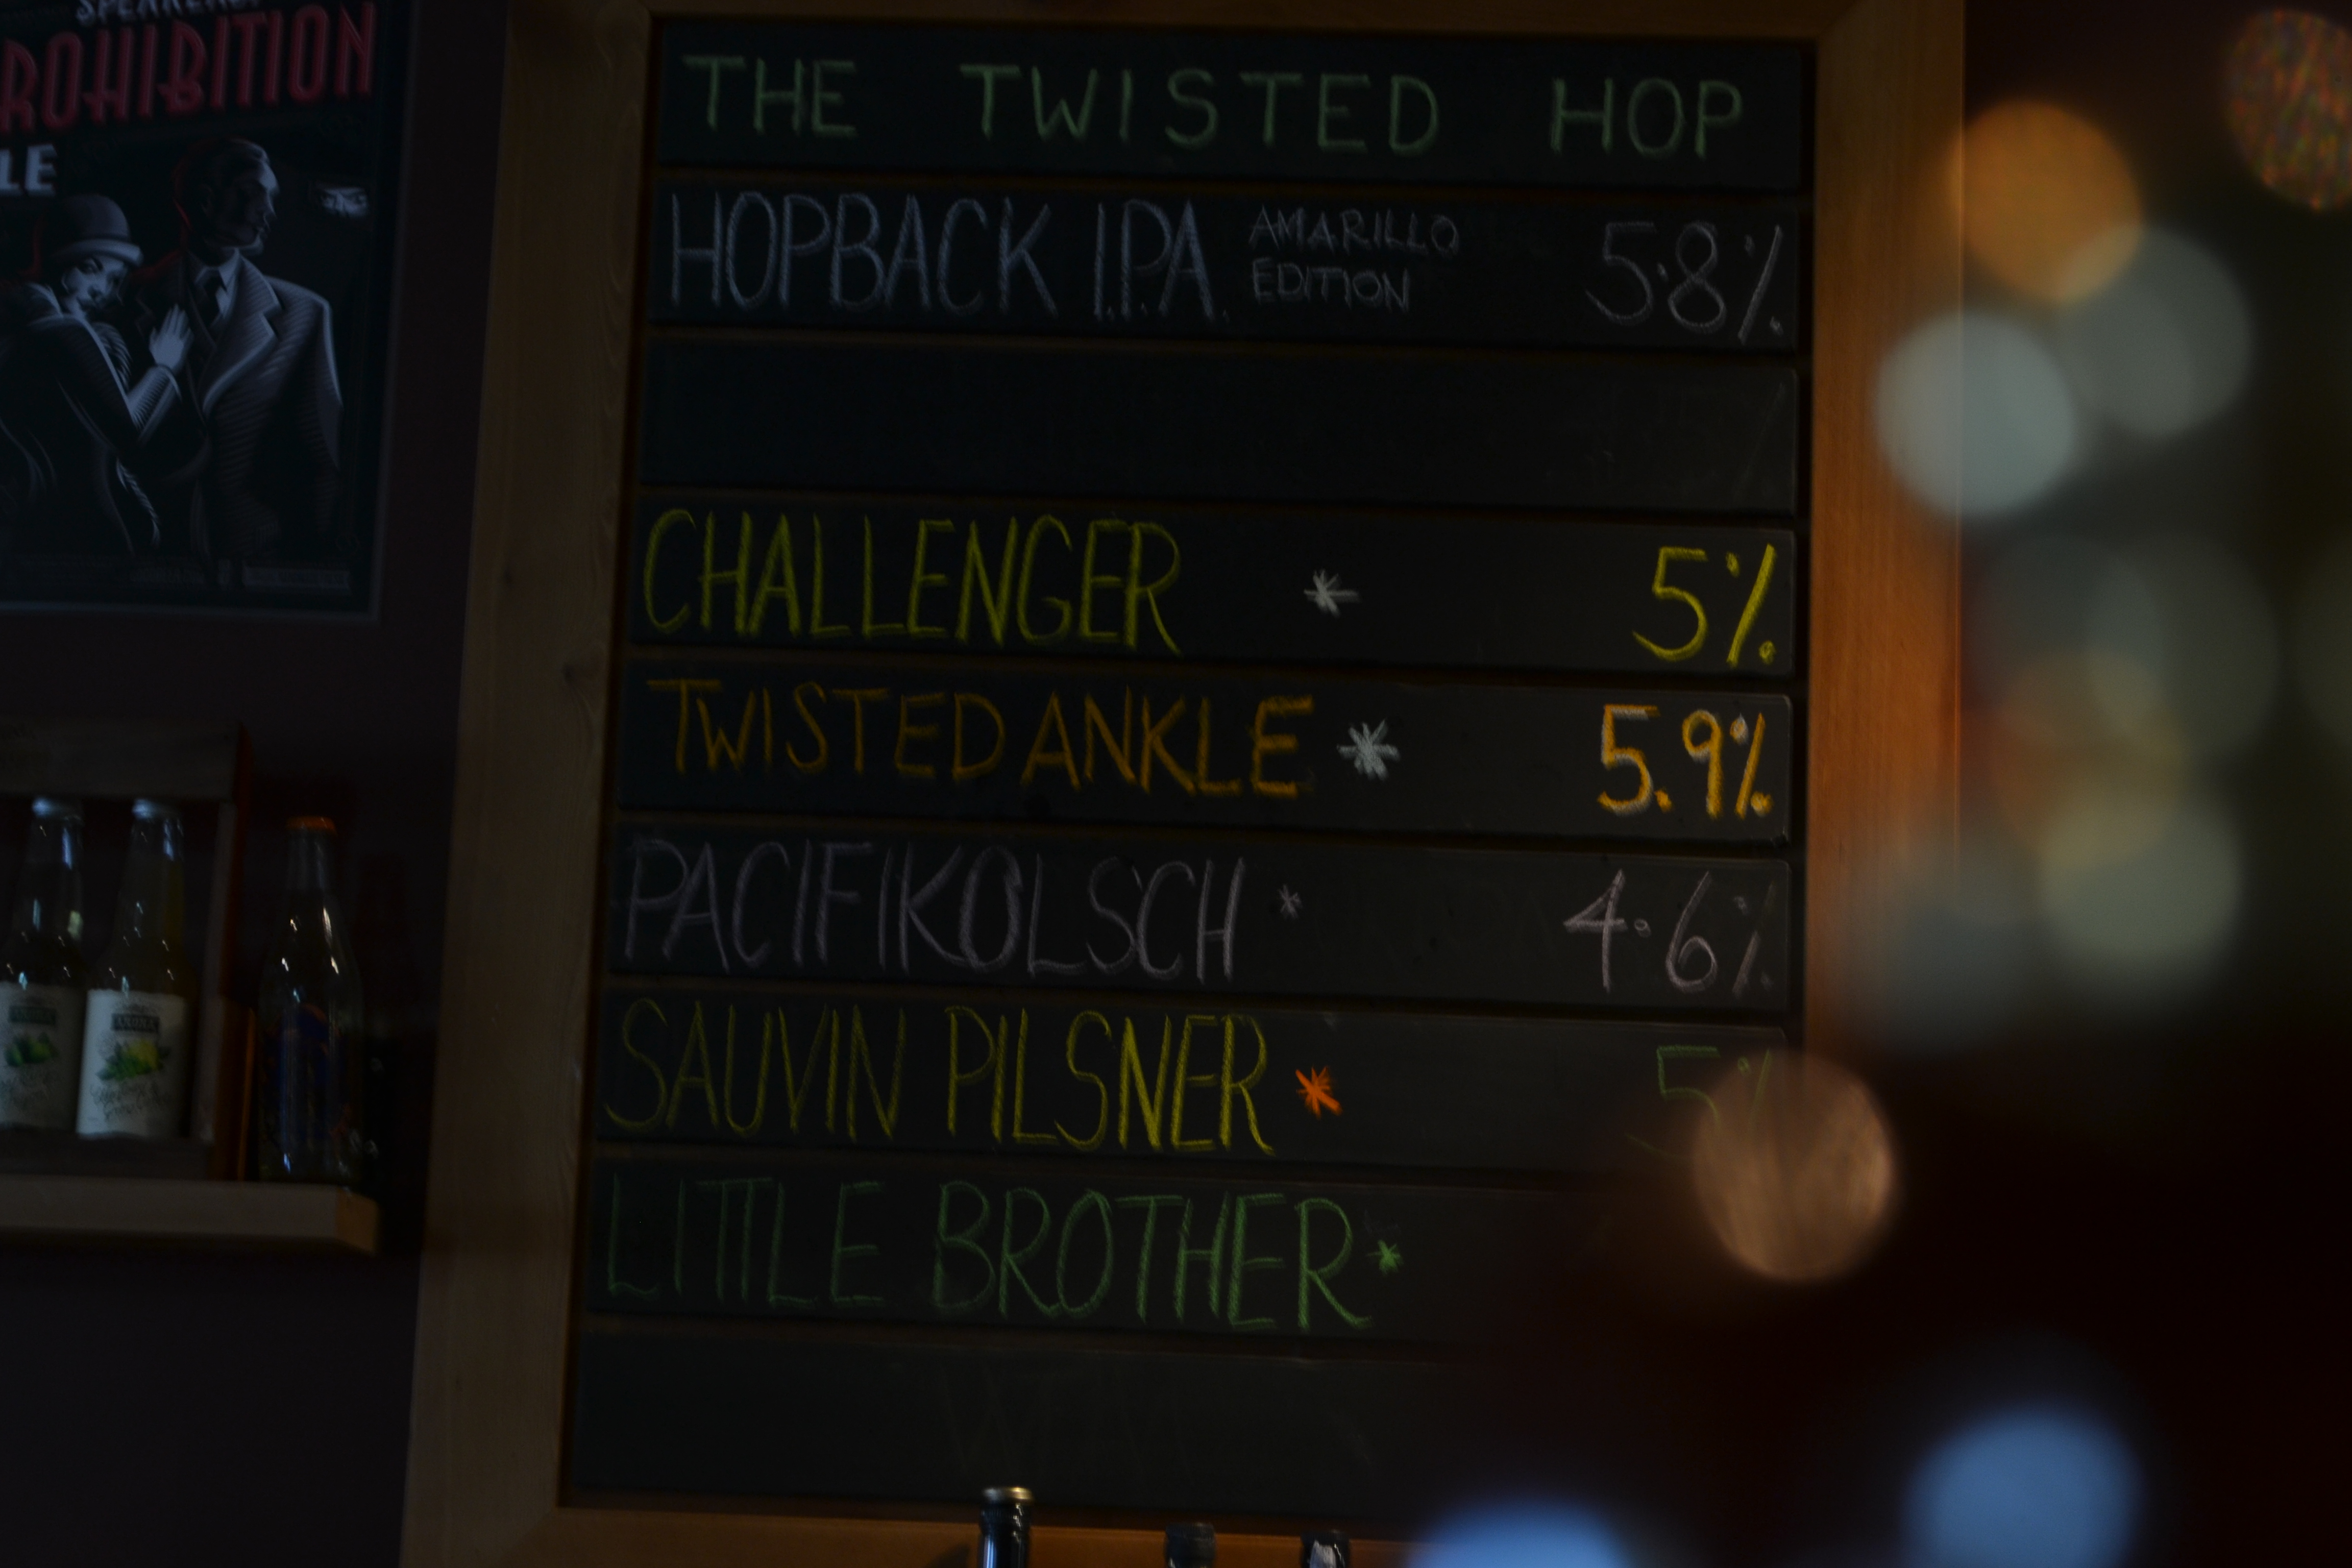 House taps at the Twisted Hop